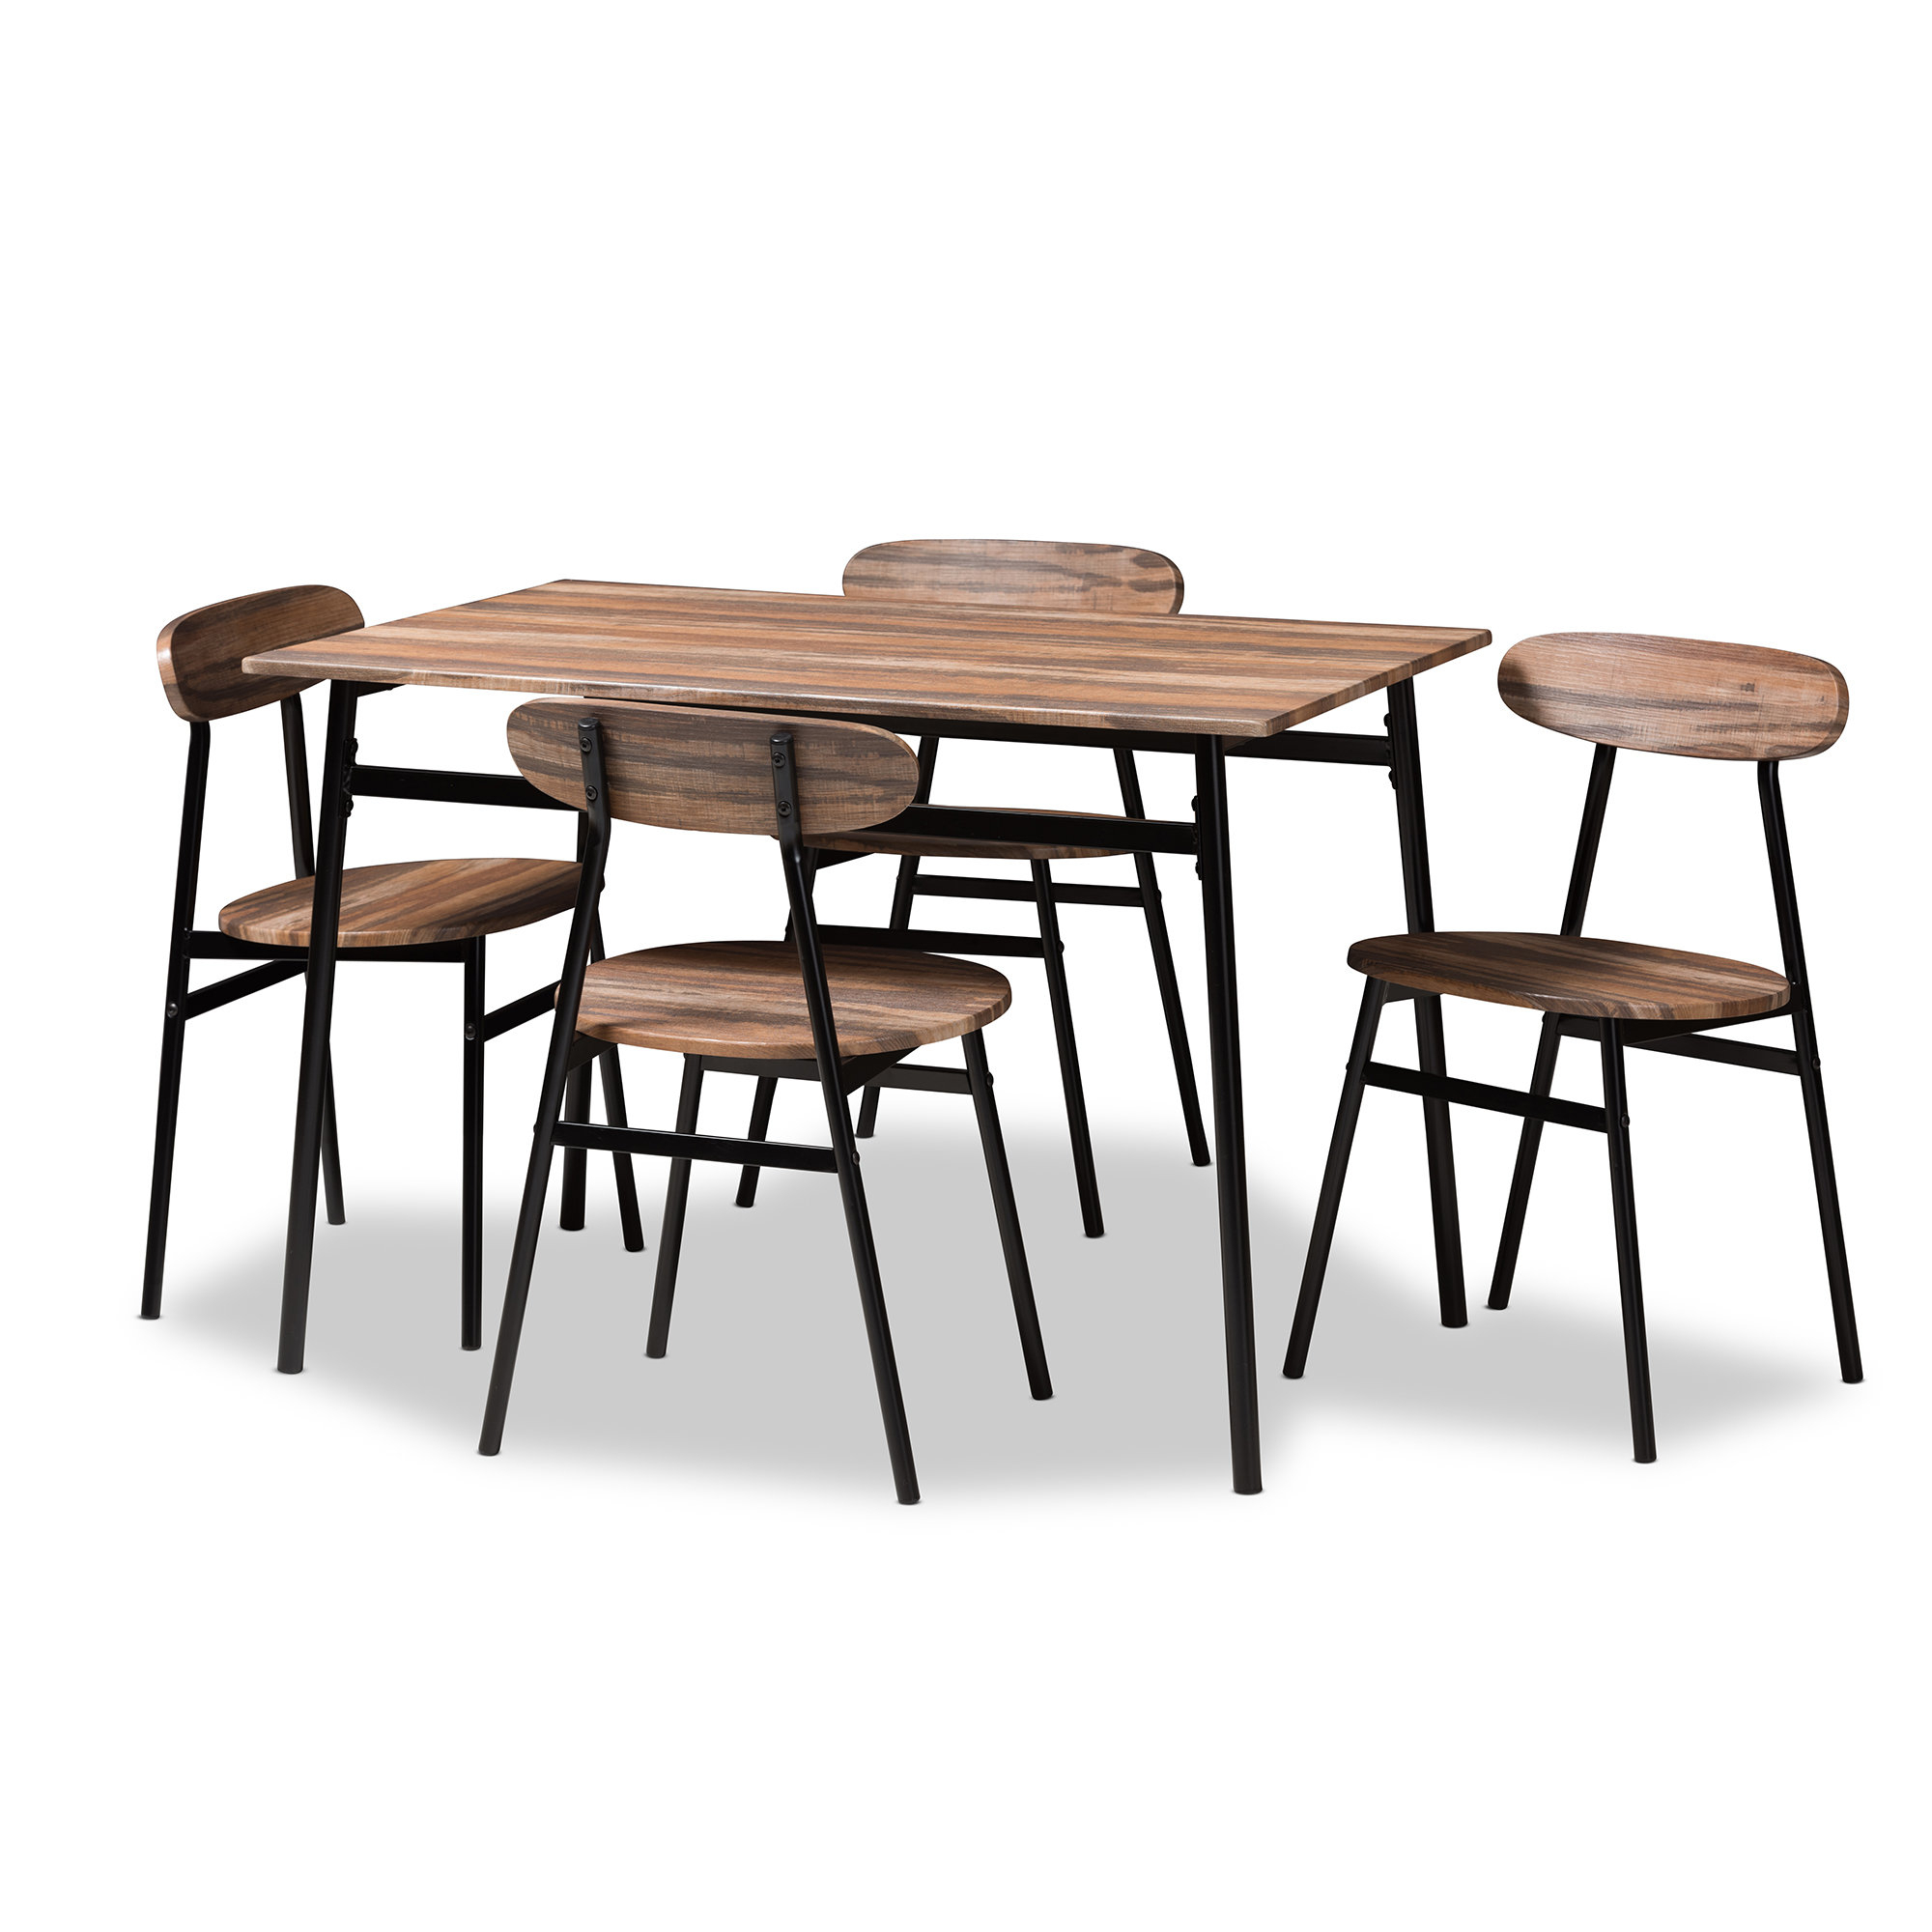 Telauges 5 Piece Dining Set Within 2018 Casiano 5 Piece Dining Sets (Image 18 of 20)